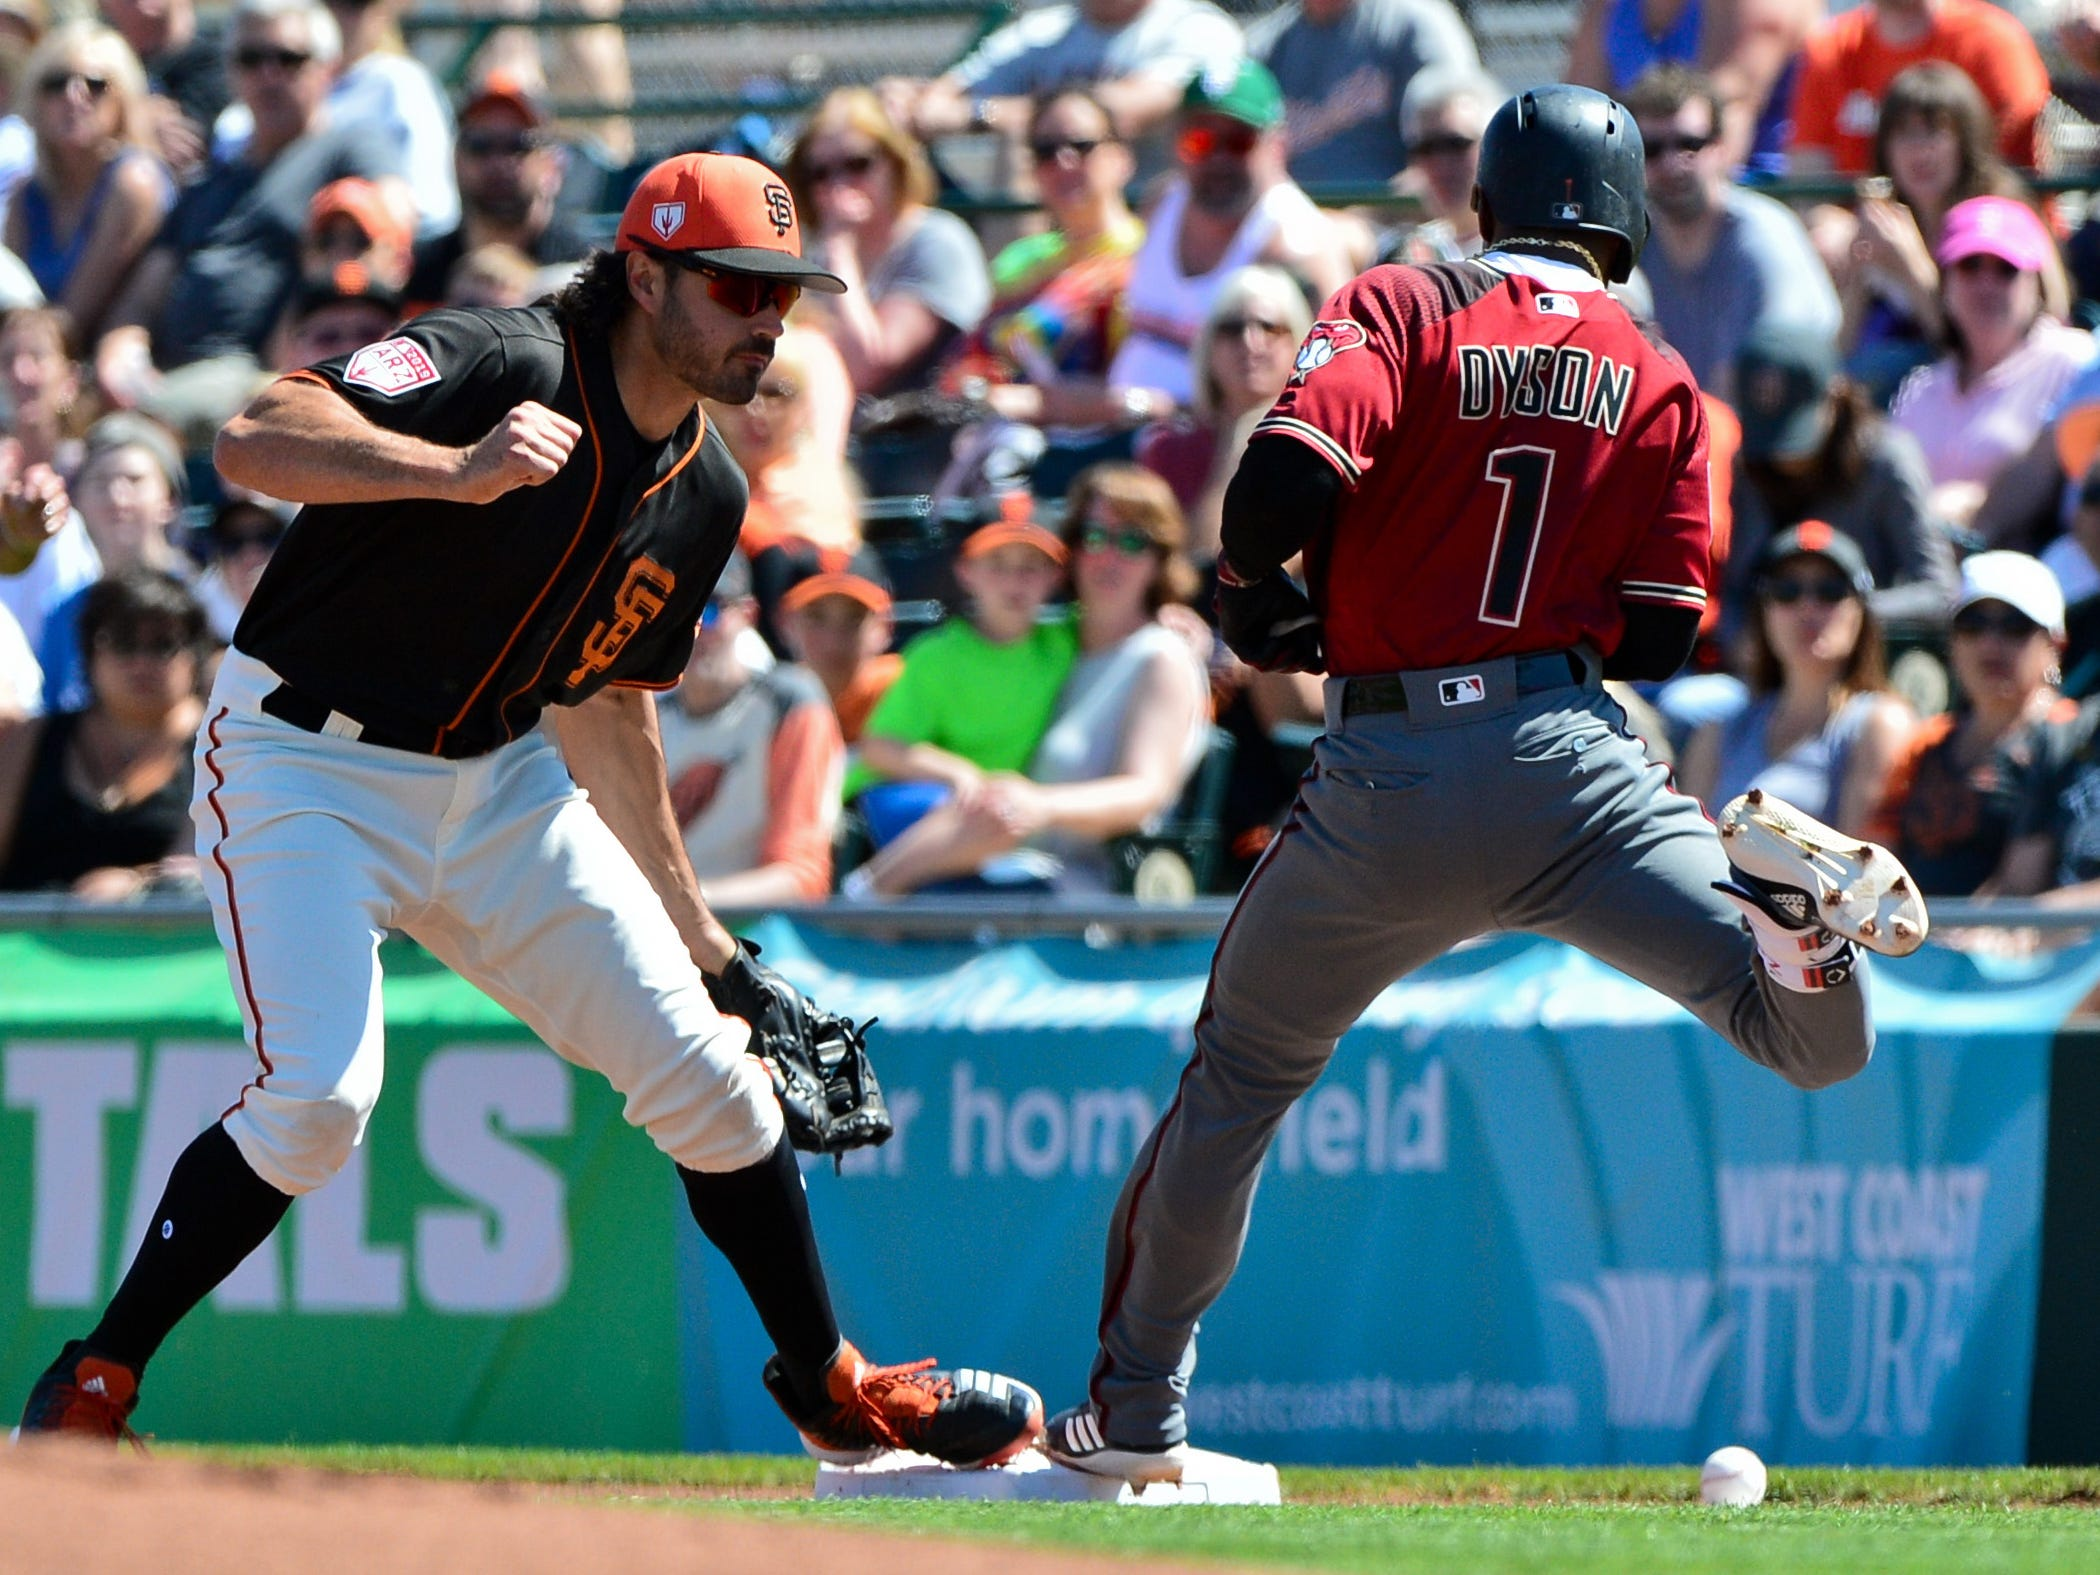 Mar 23, 2019; Scottsdale, AZ, USA; Arizona Diamondbacks center fielder Jarrod Dyson (1) touches first base as San Francisco Giants catcher Aramis Garcia (16) misses the ball during the first inning at Scottsdale Stadium.